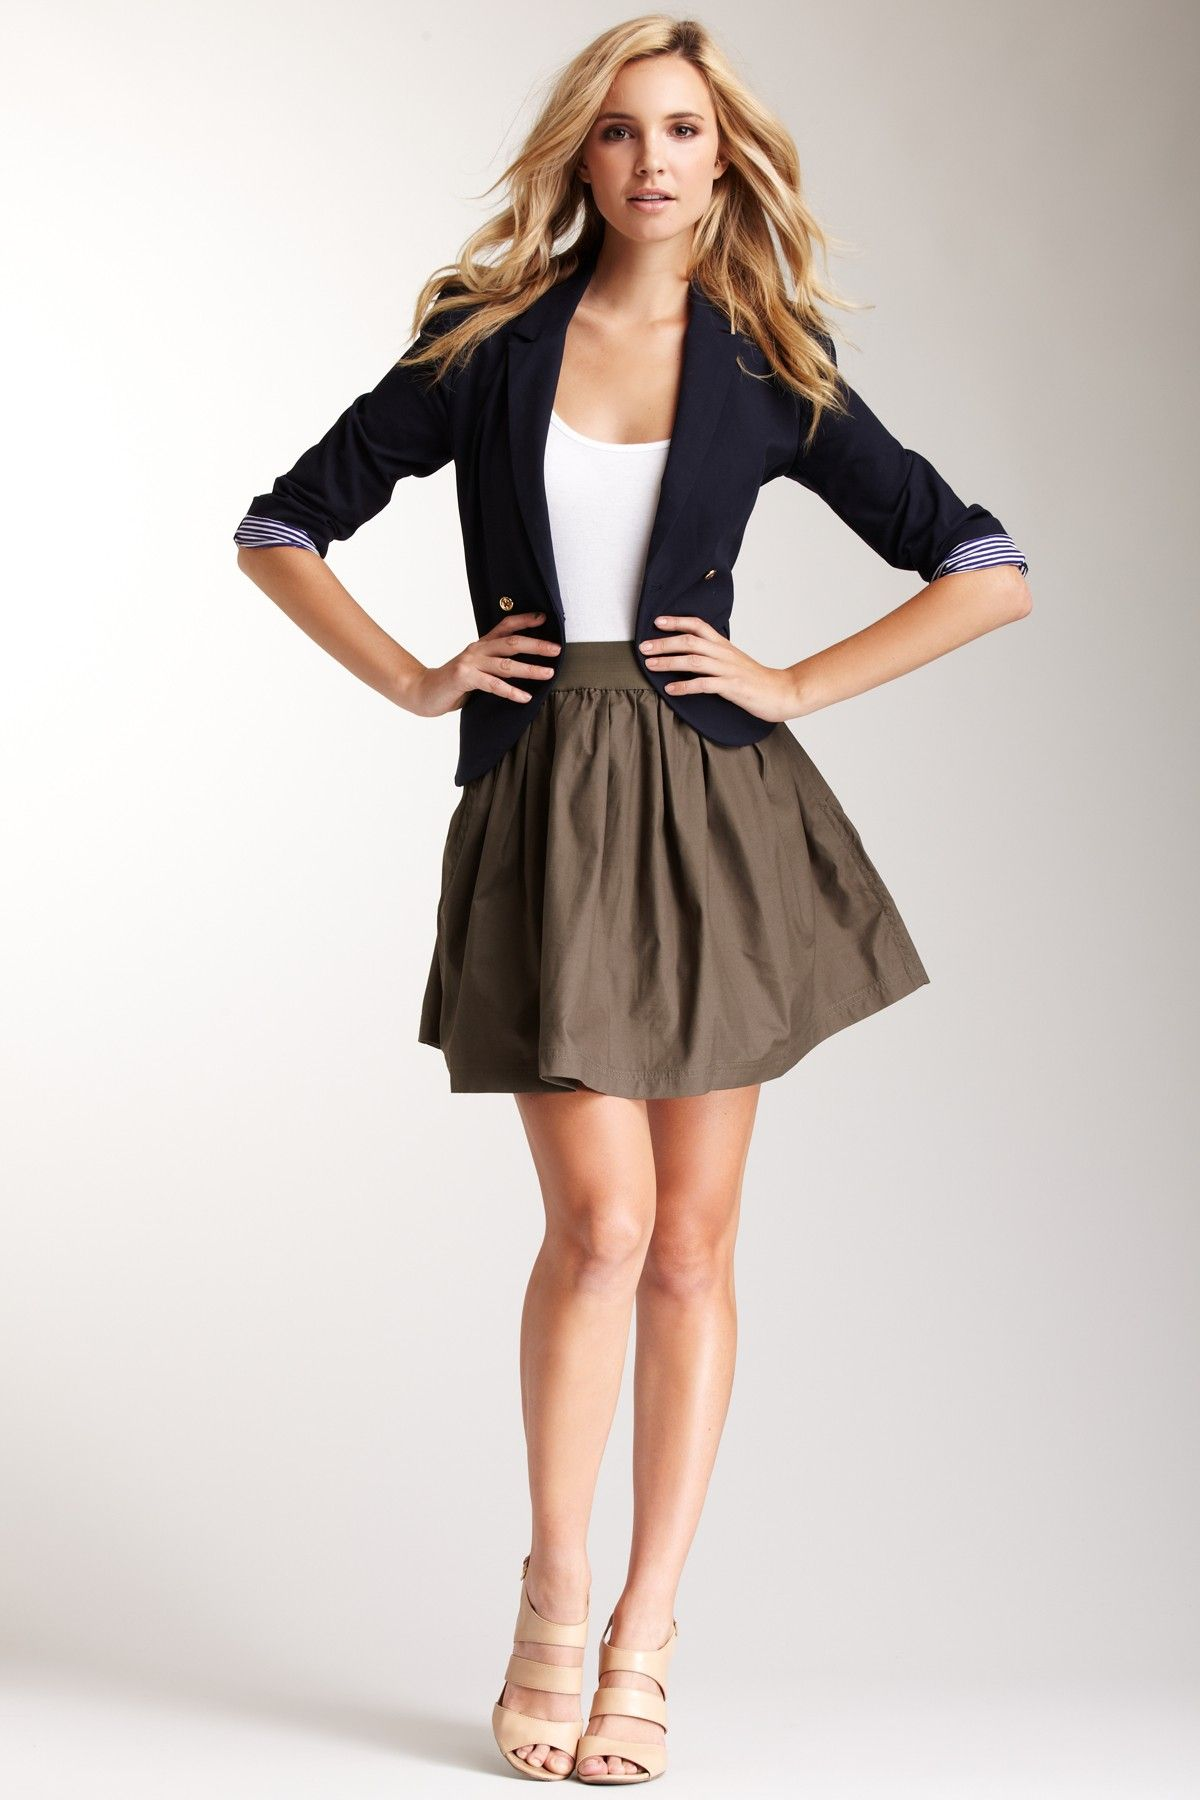 Love the blend of the blazer, simple white tank, and skirt.